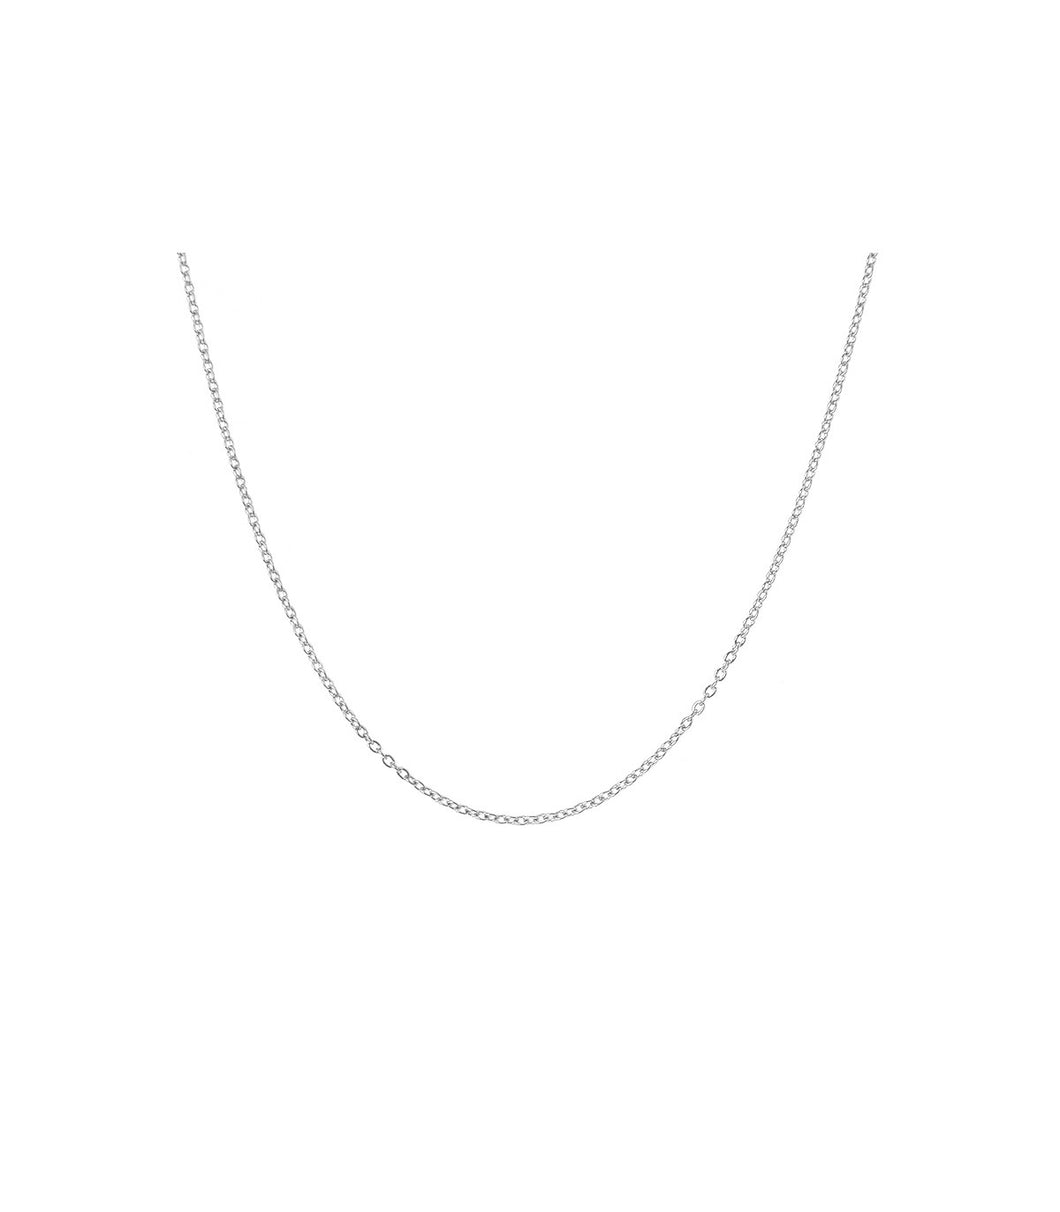 CHAINE  : Collier chaine Acier Chirurgical 316L -